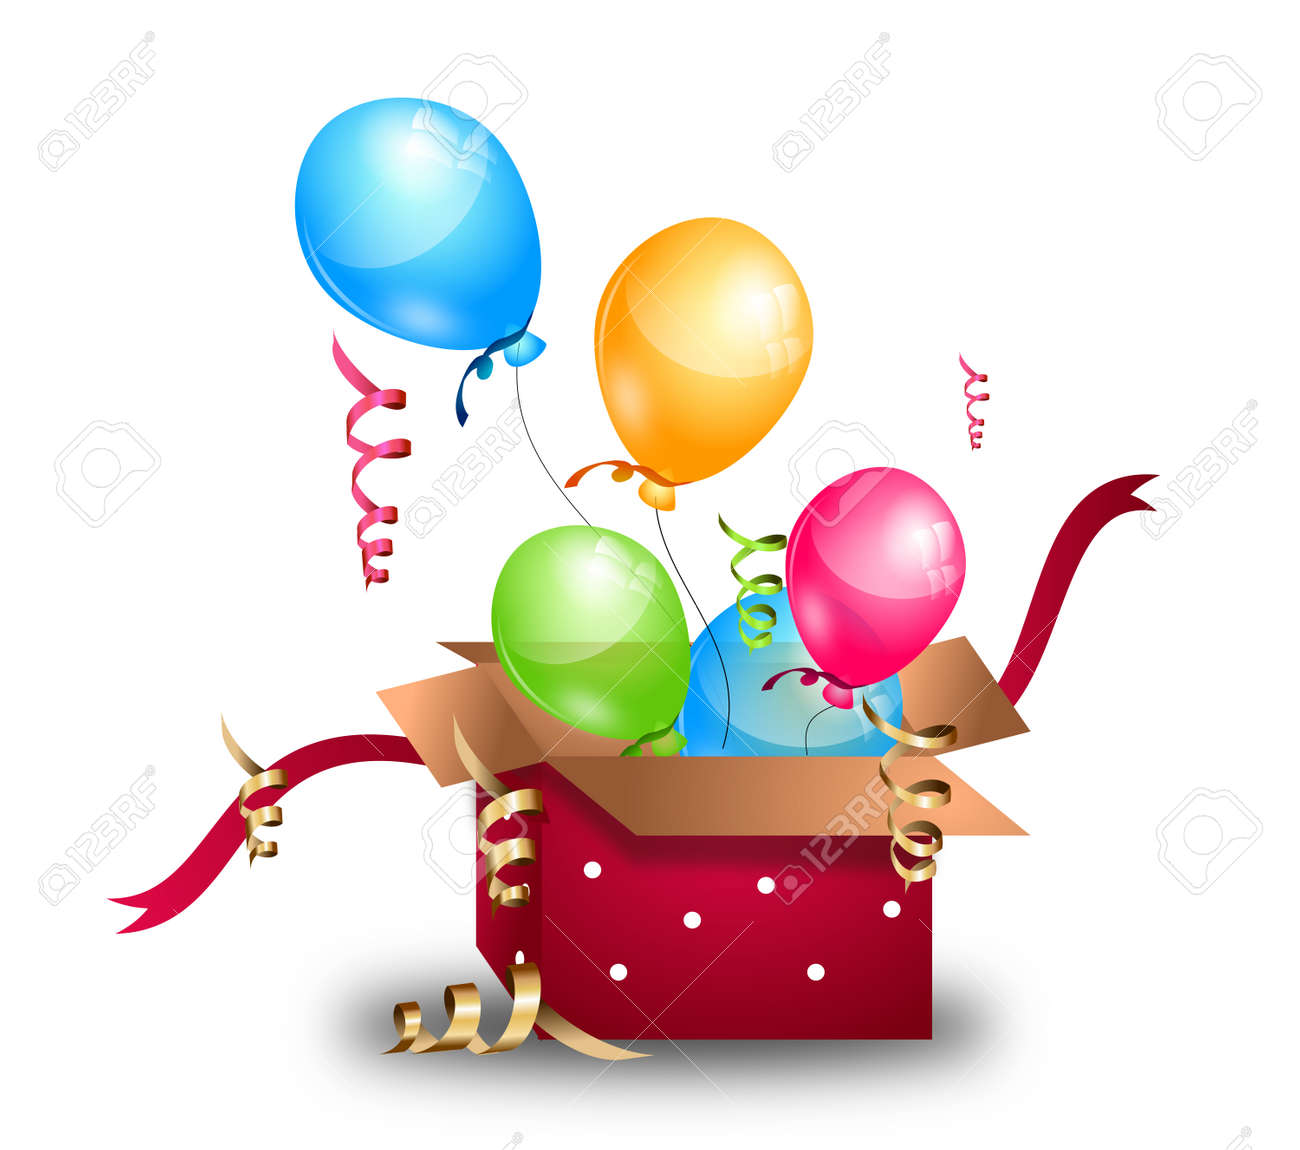 Illustration Of Open Gift Box With Flying Birthday Balloons Stock